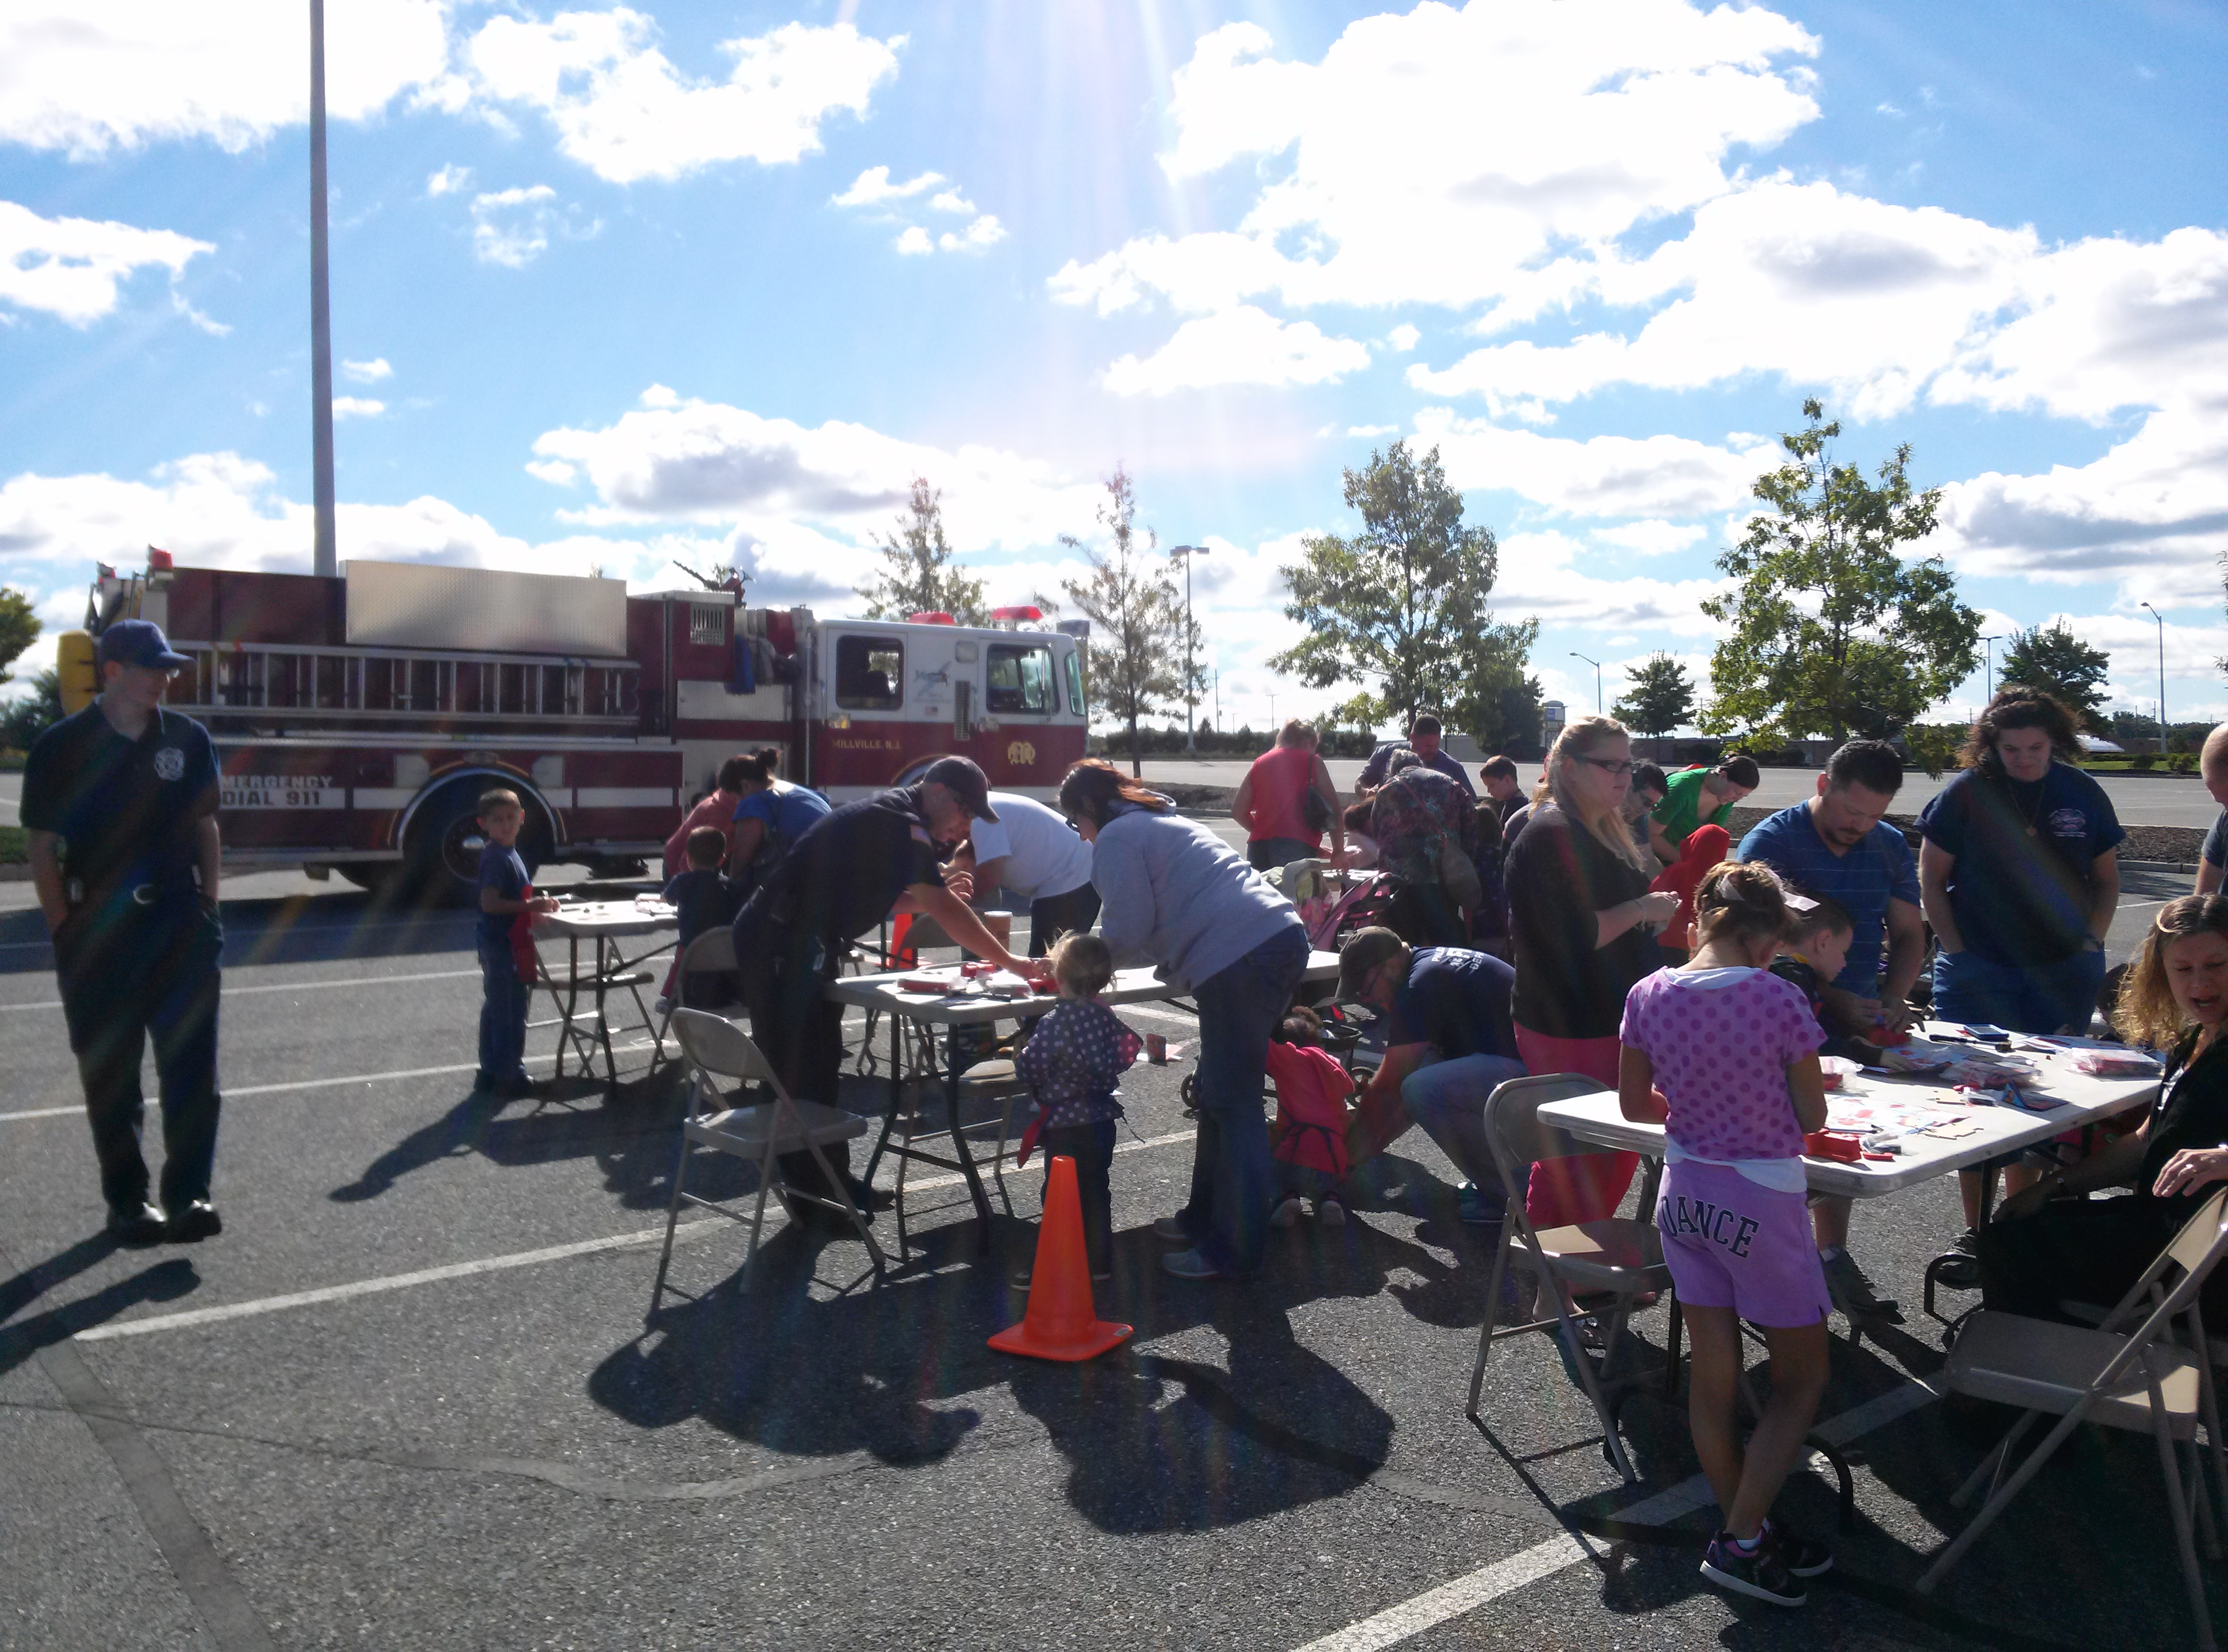 Lowes Fire Truck Day